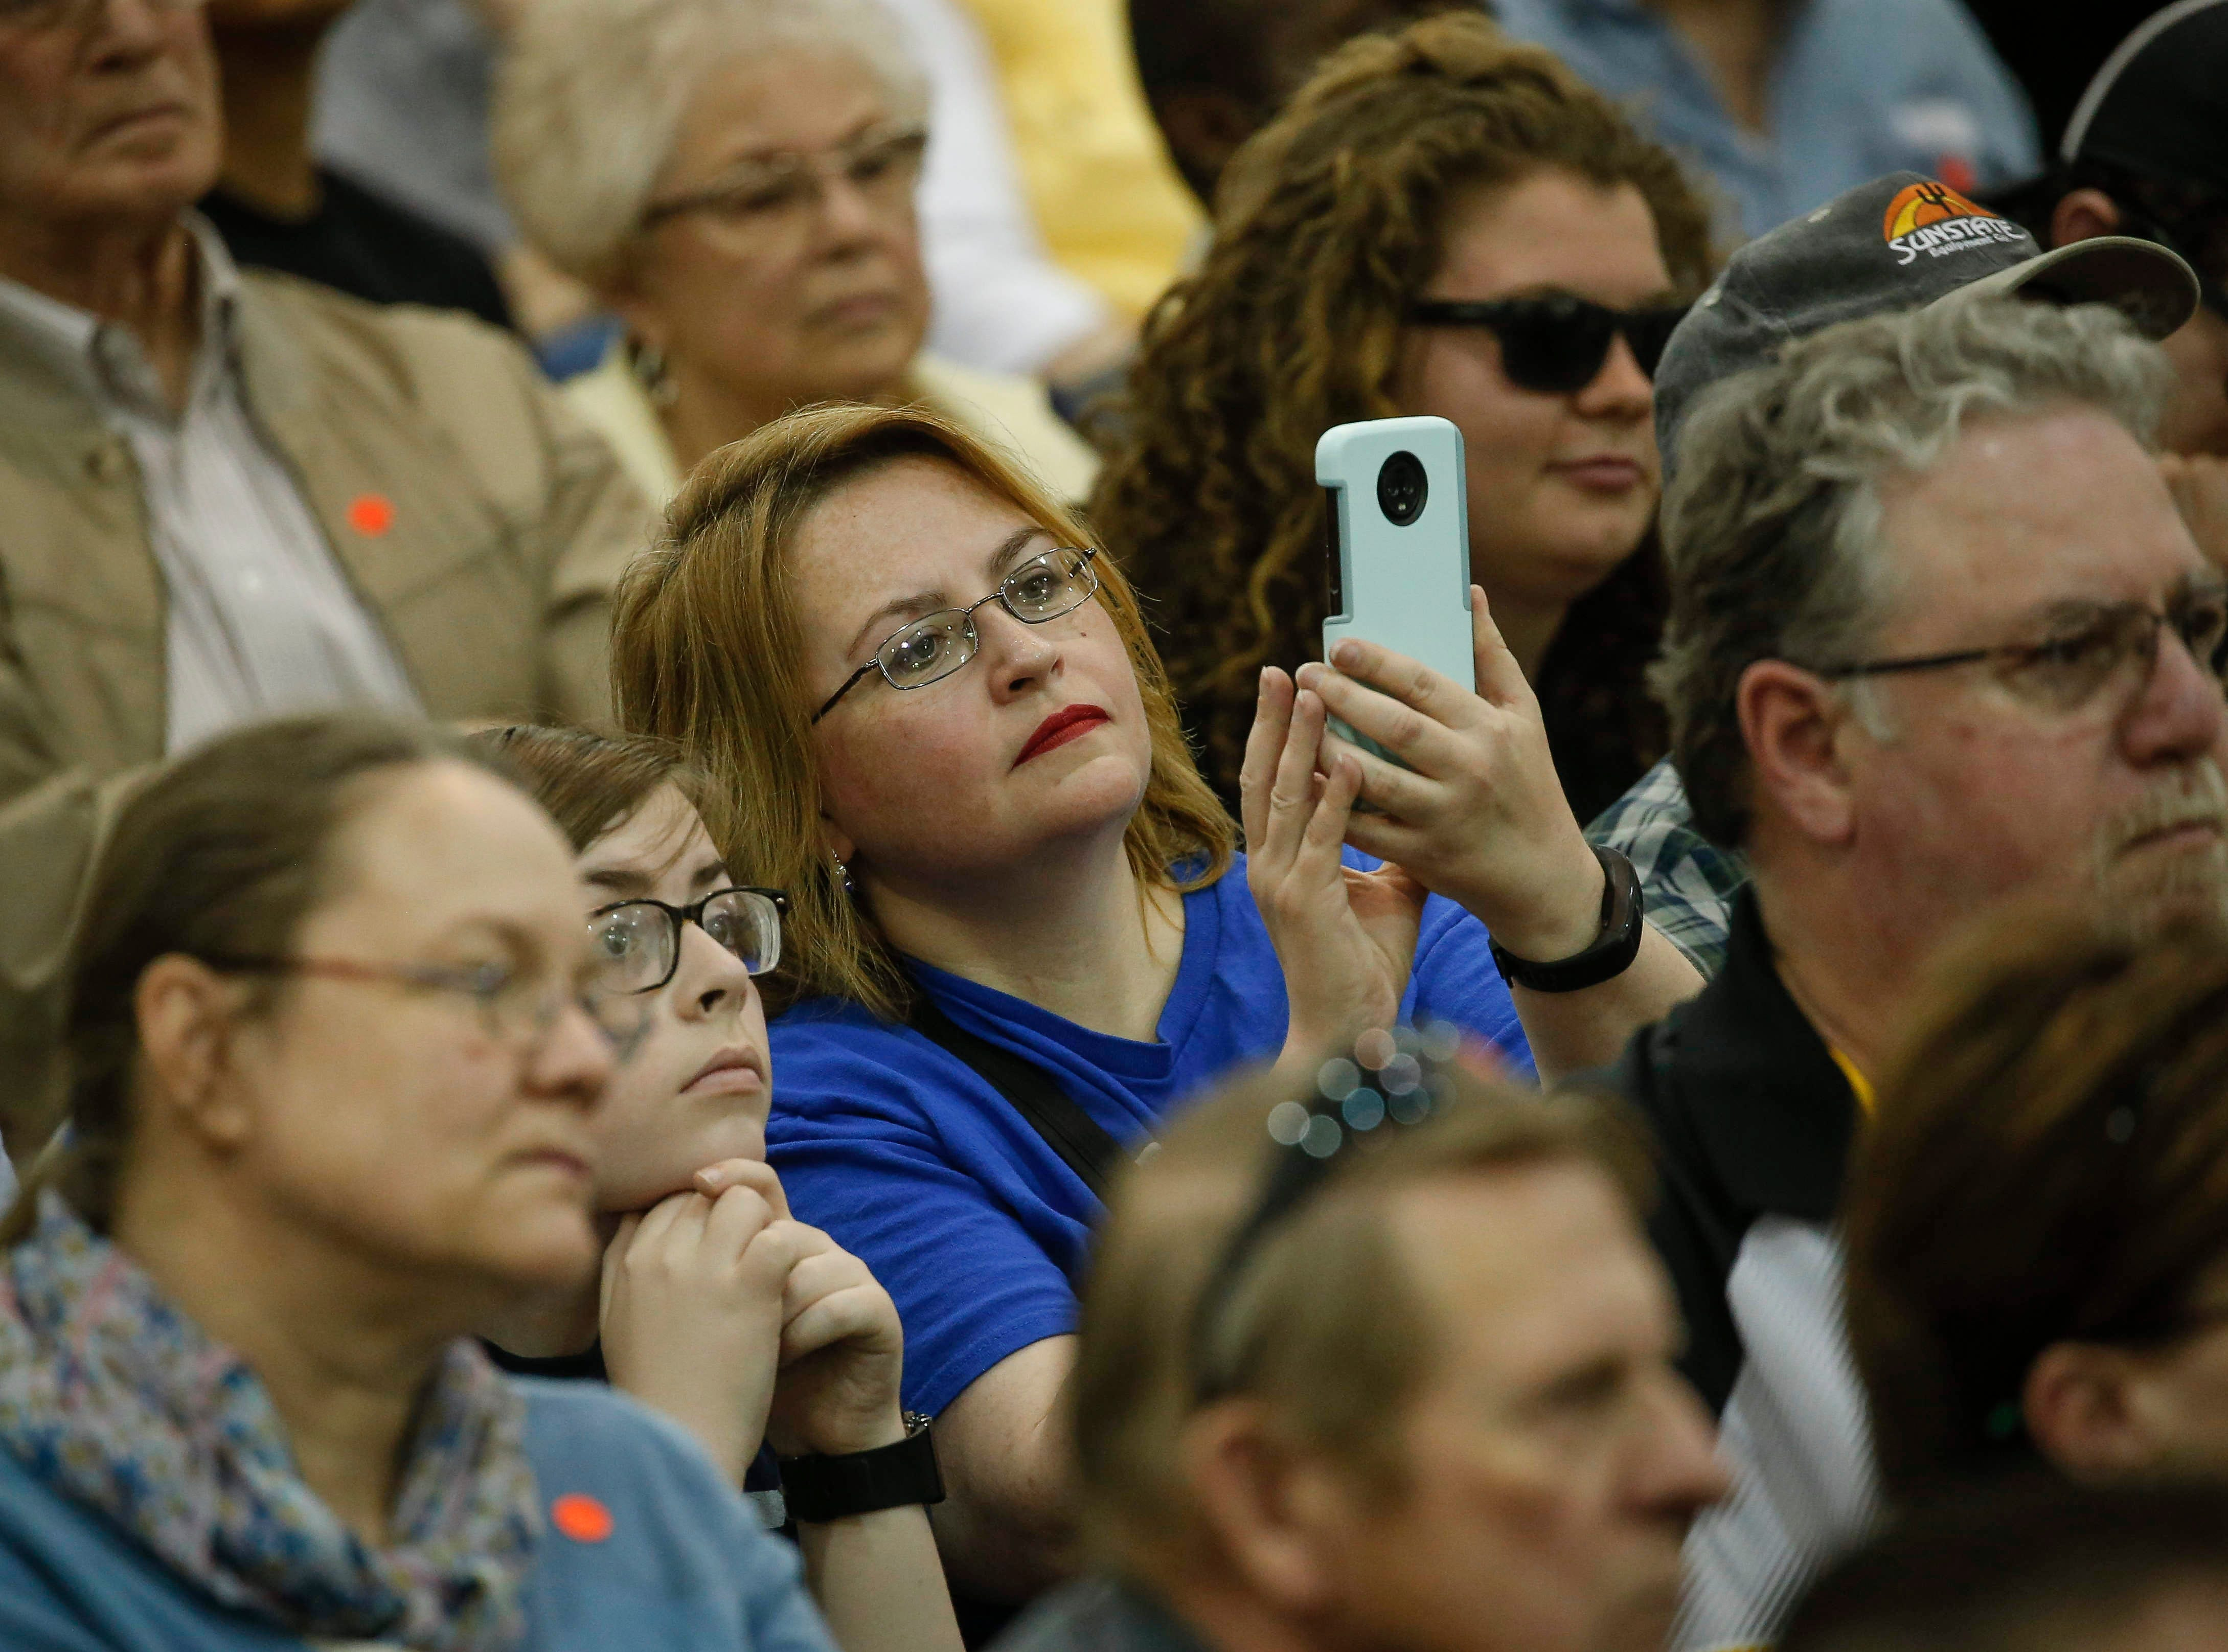 A supporter of Democratic presidential hopeful Bernie Sanders snaps a cell phone photo as he speaks during a town hall style meeting at West Middle School in Muscatine on Saturday, April 6, 2019.